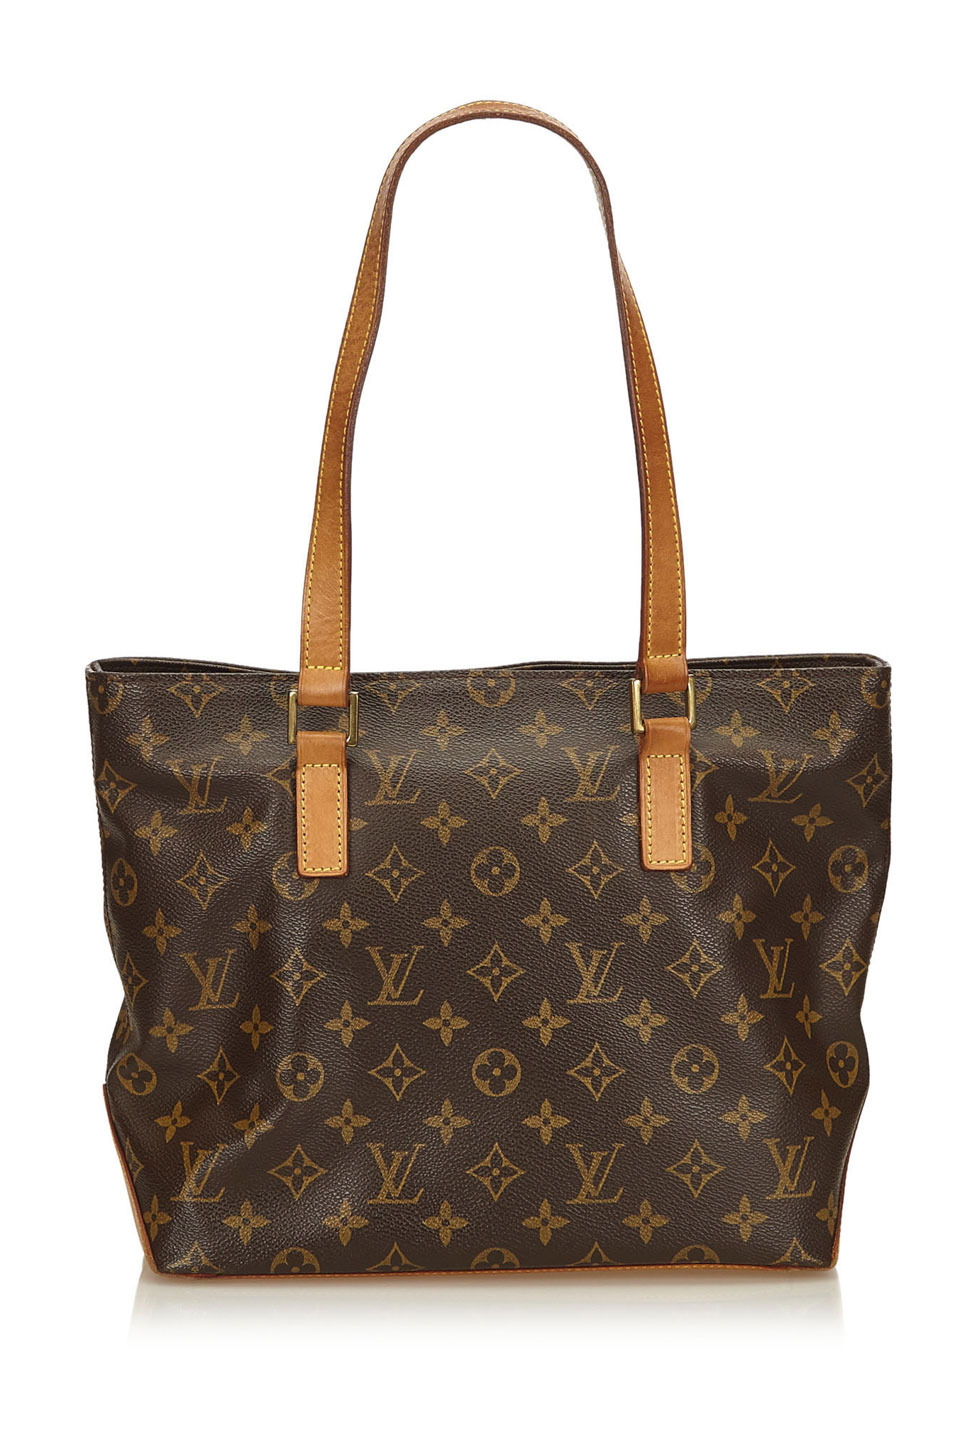 Louis Vuitton Monogram Cabas Piano in Brown